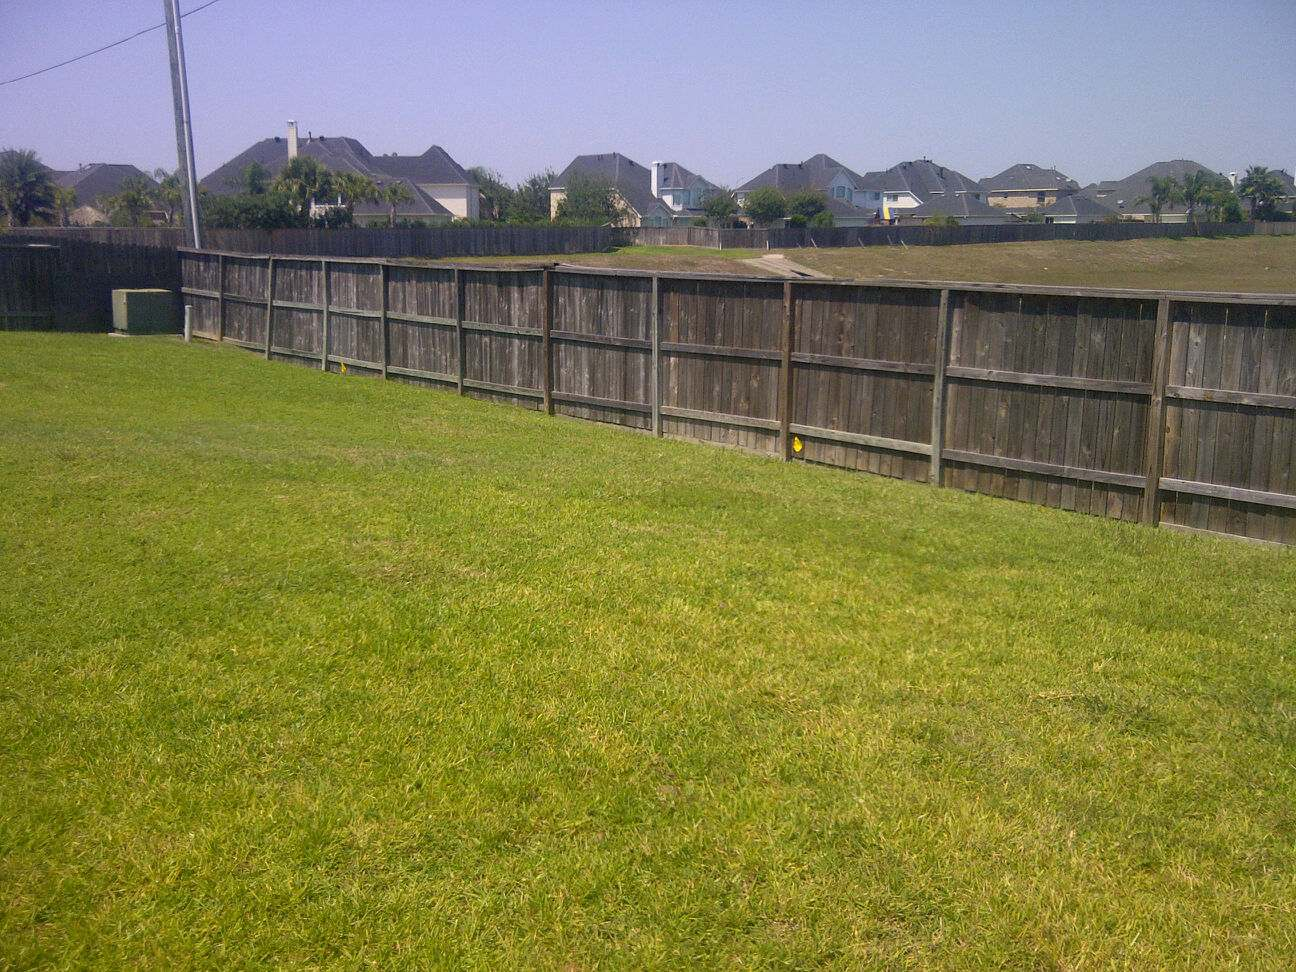 new fence: before